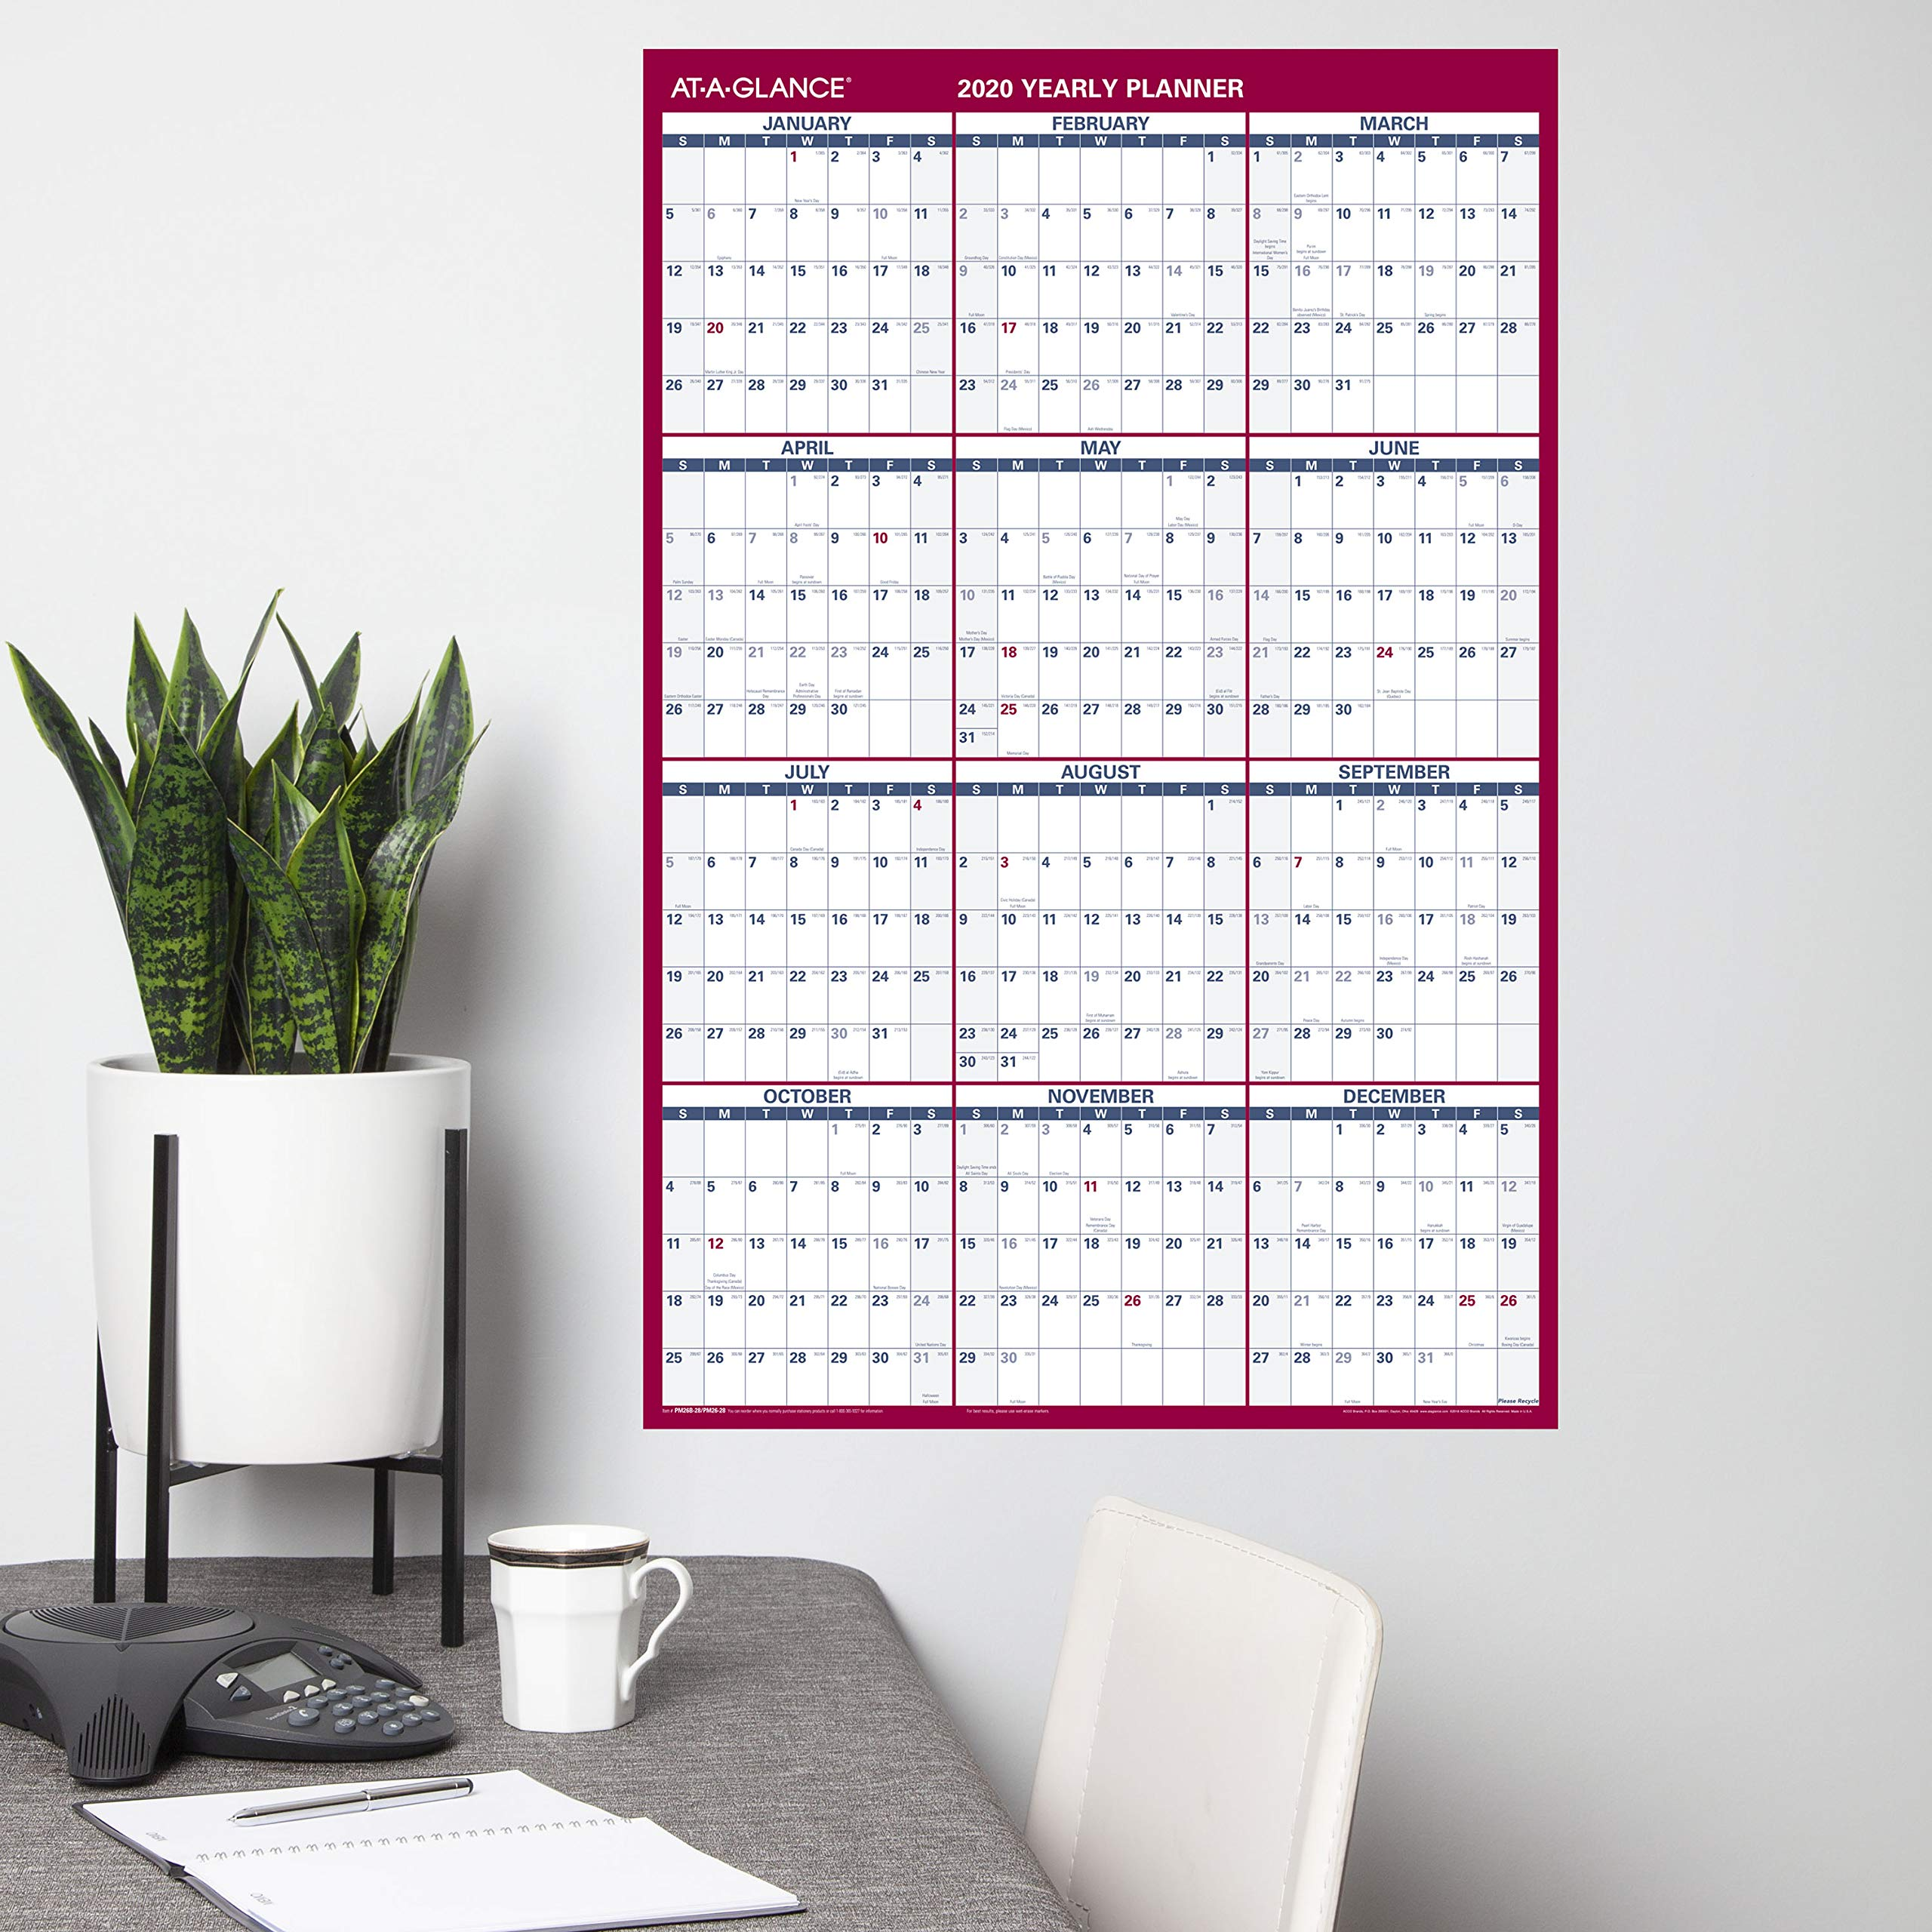 """AT-A-GLANCE Large Dry Erase Wall Calendar 2020, Erasable, Monthly & Yearly Whiteboard Planner, Home Shool & Home Office Organization, 36"""" x 24"""", Double Sided, Vertical/Horizontal (PM26B28)"""